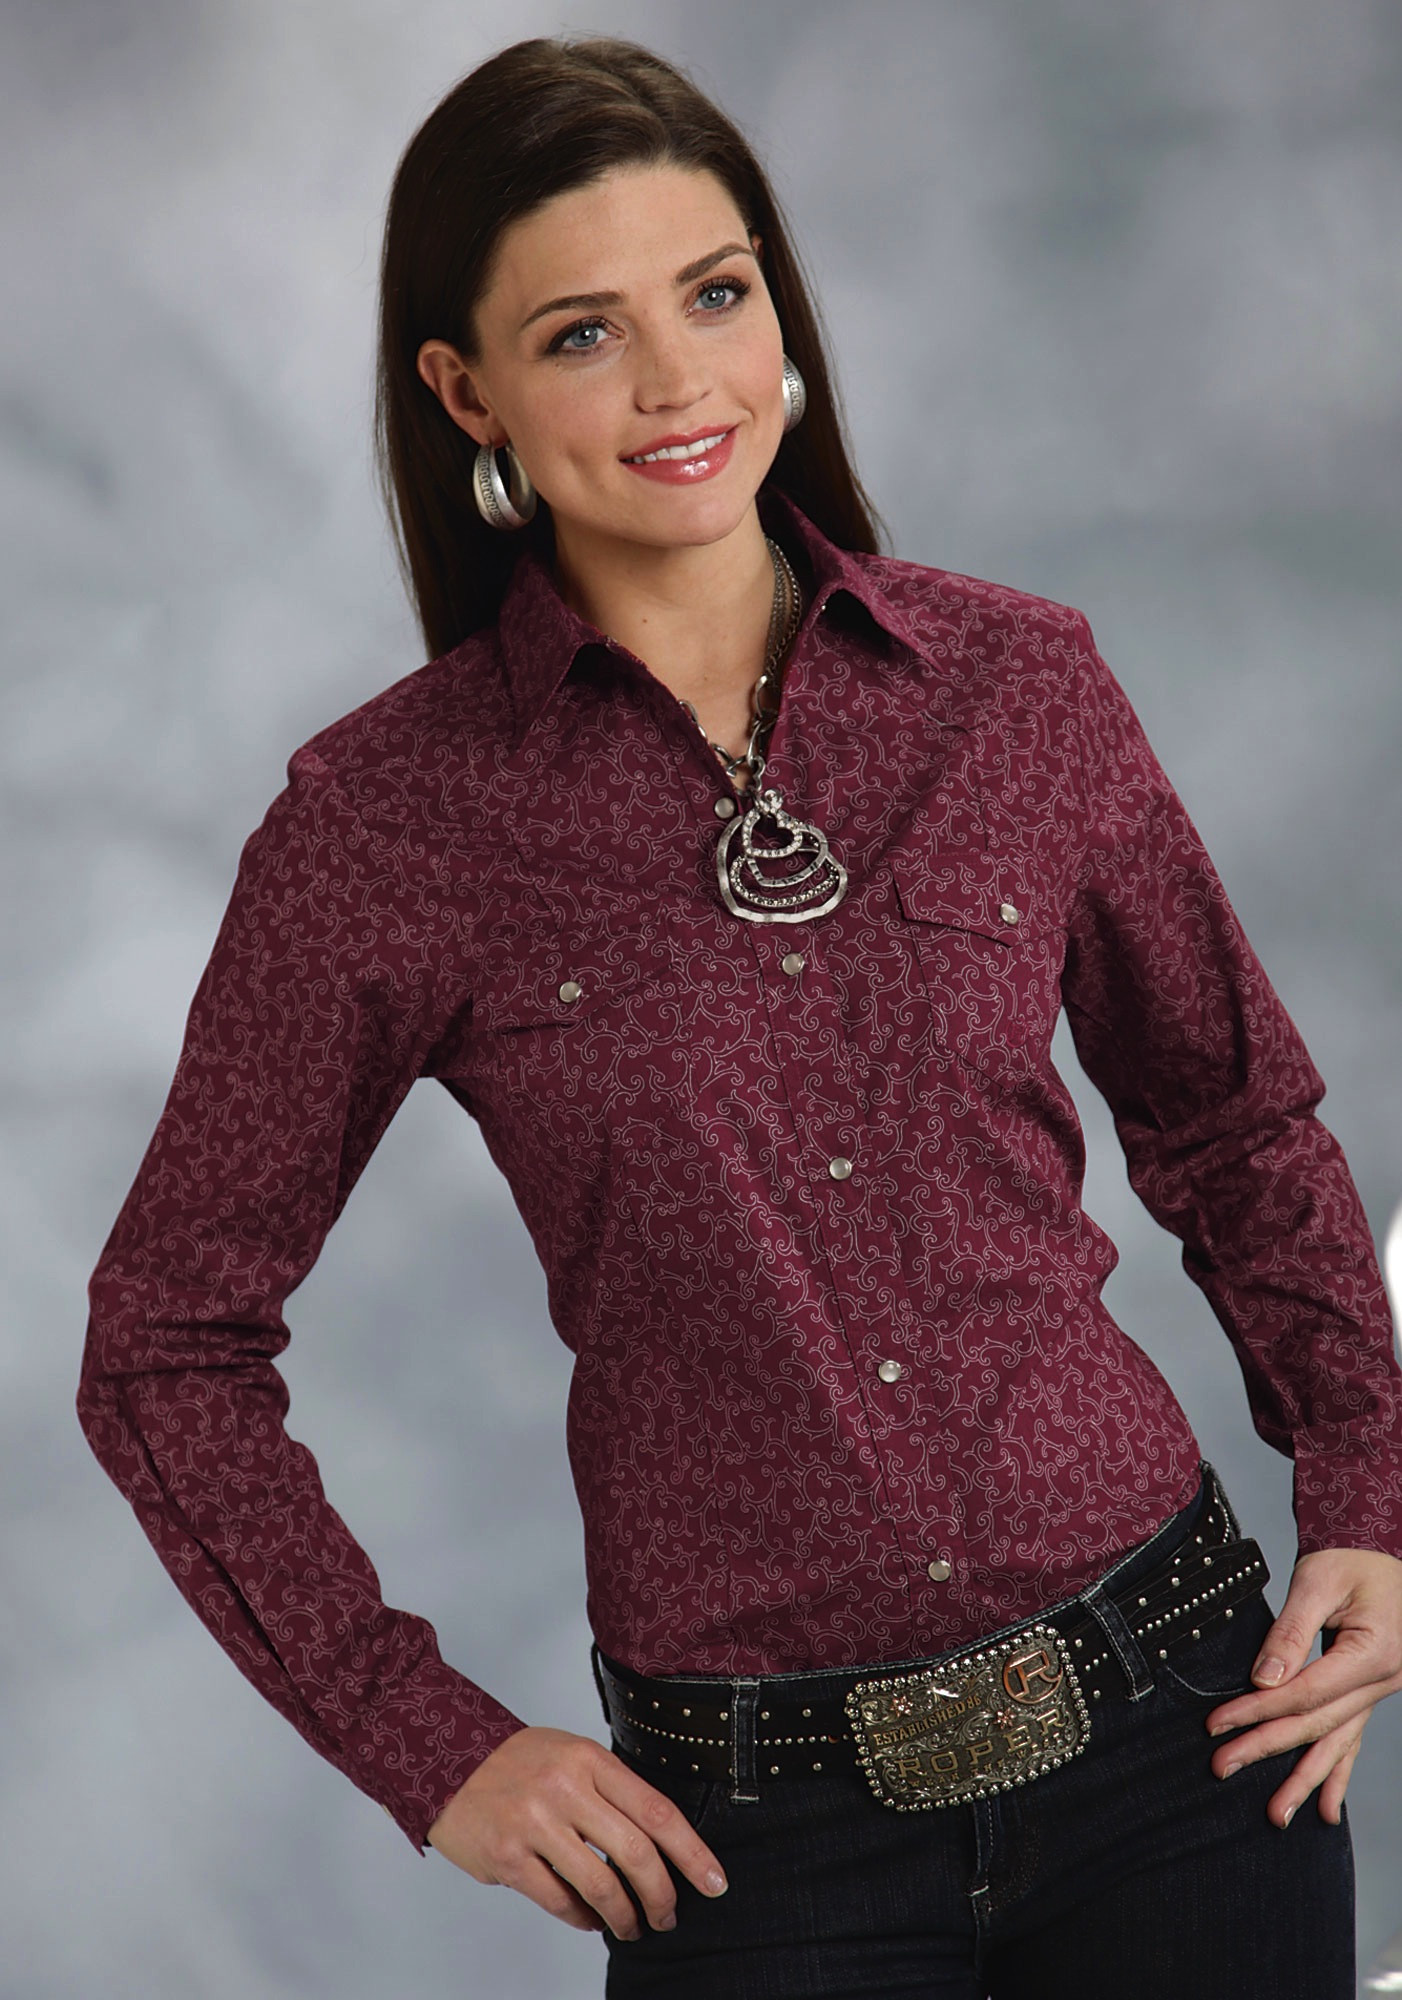 western women Our women's western wear is perfect for any kind of occasion shop wrangler for western inspired dresses, jeans, tops & accessories.